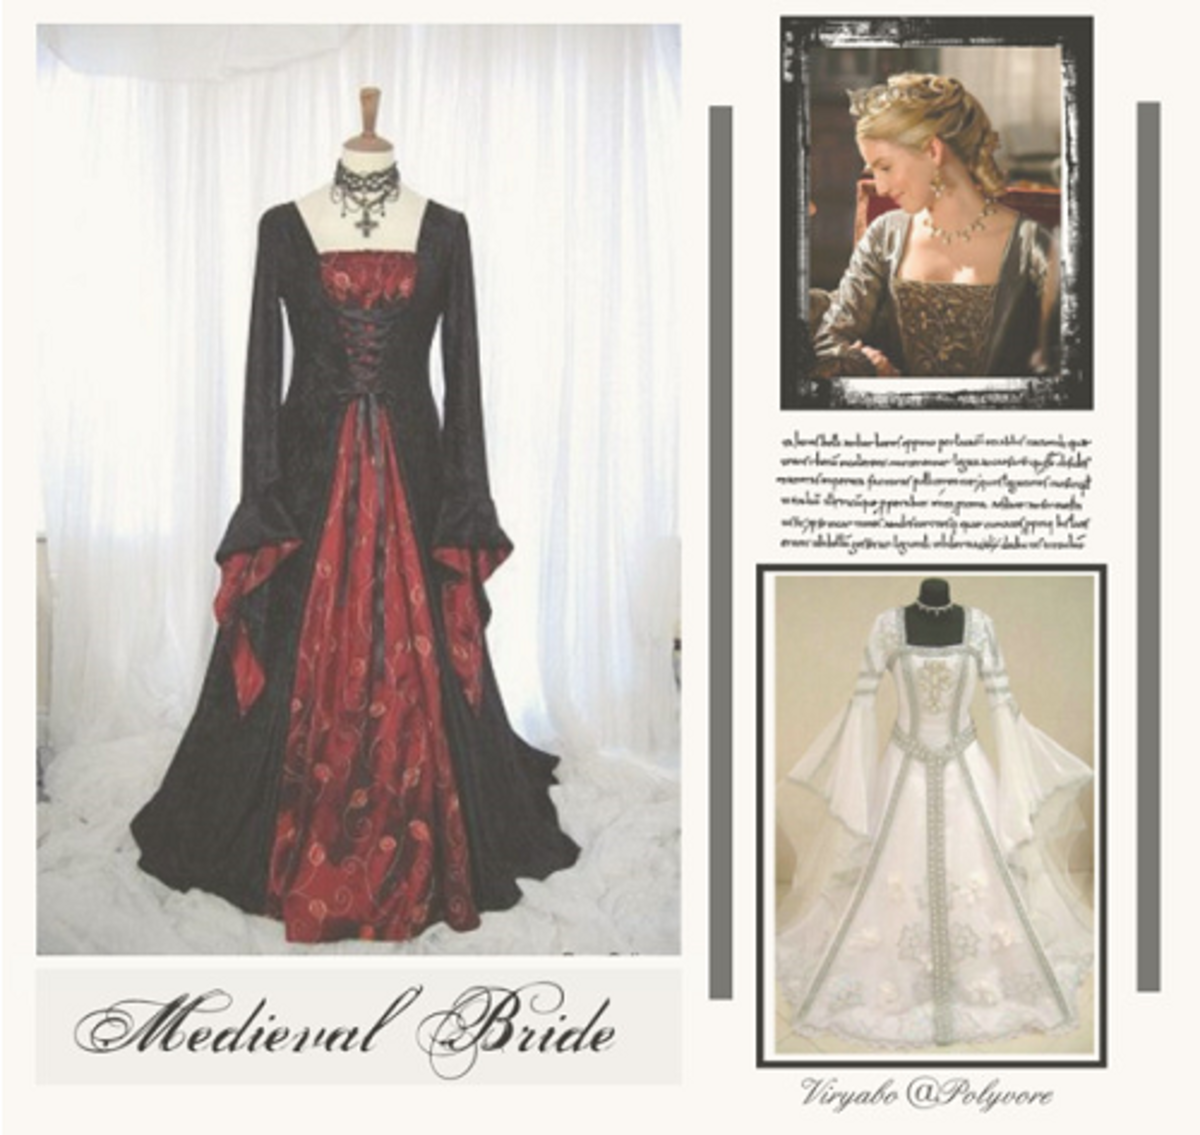 Wedding Gown Styles - Middle Ages to the 20th Century | HubPages